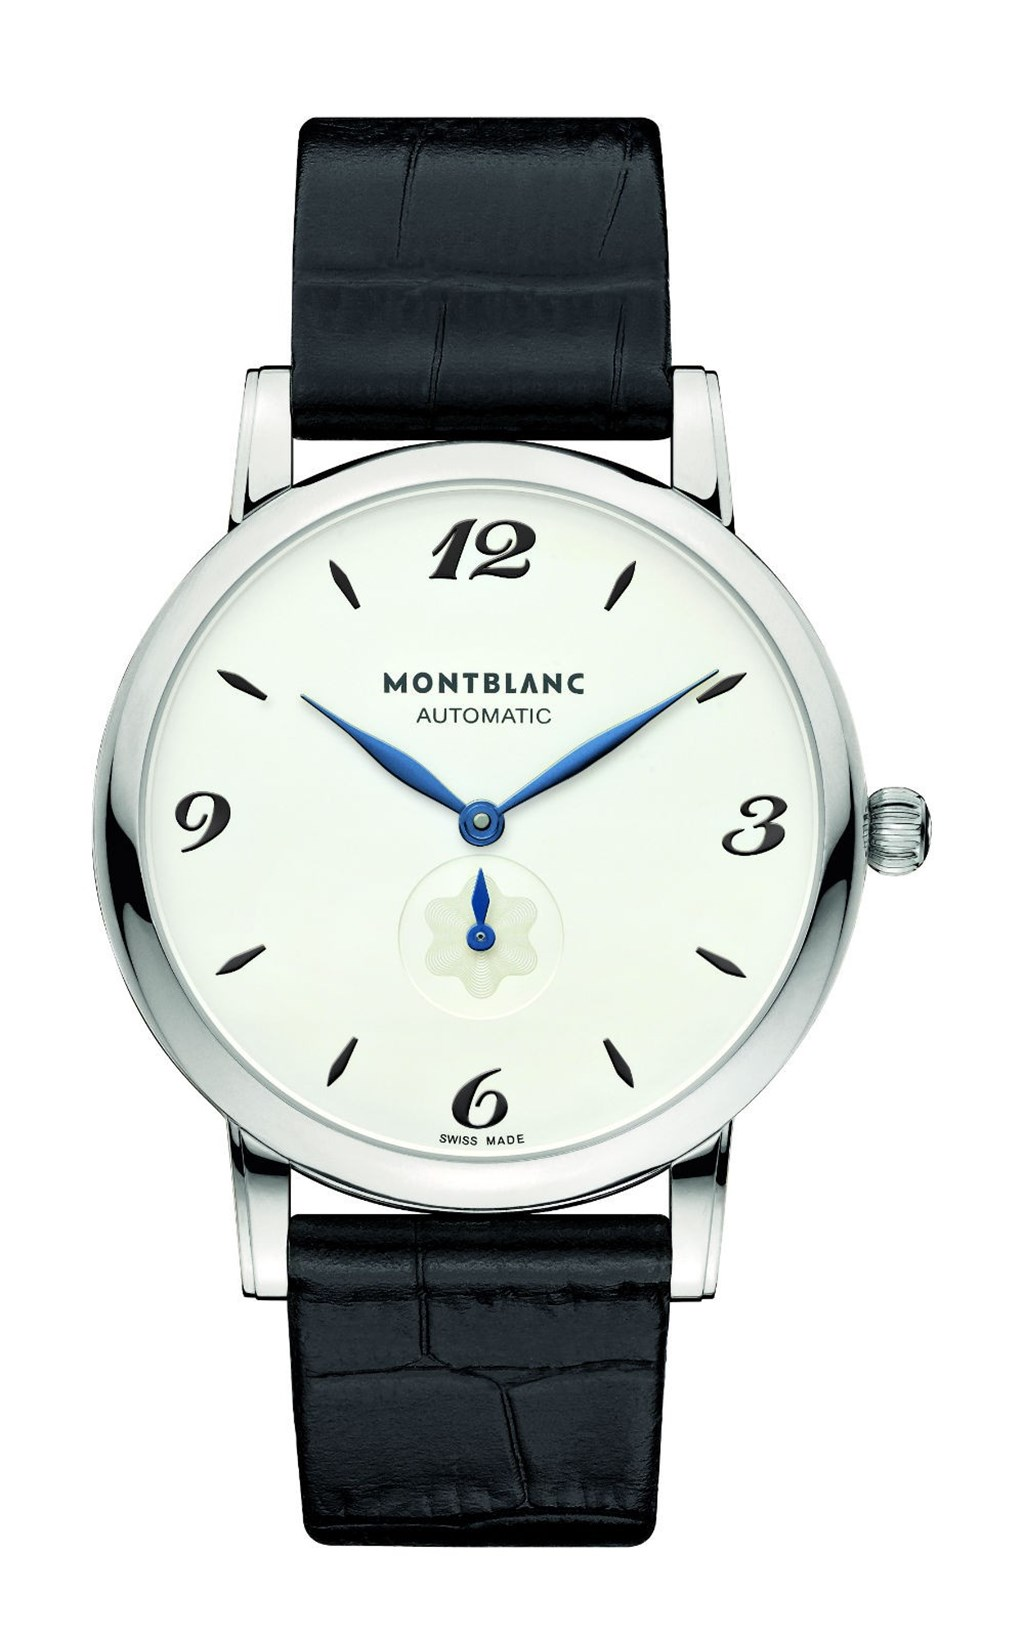 Montblanc At The Oscars 10